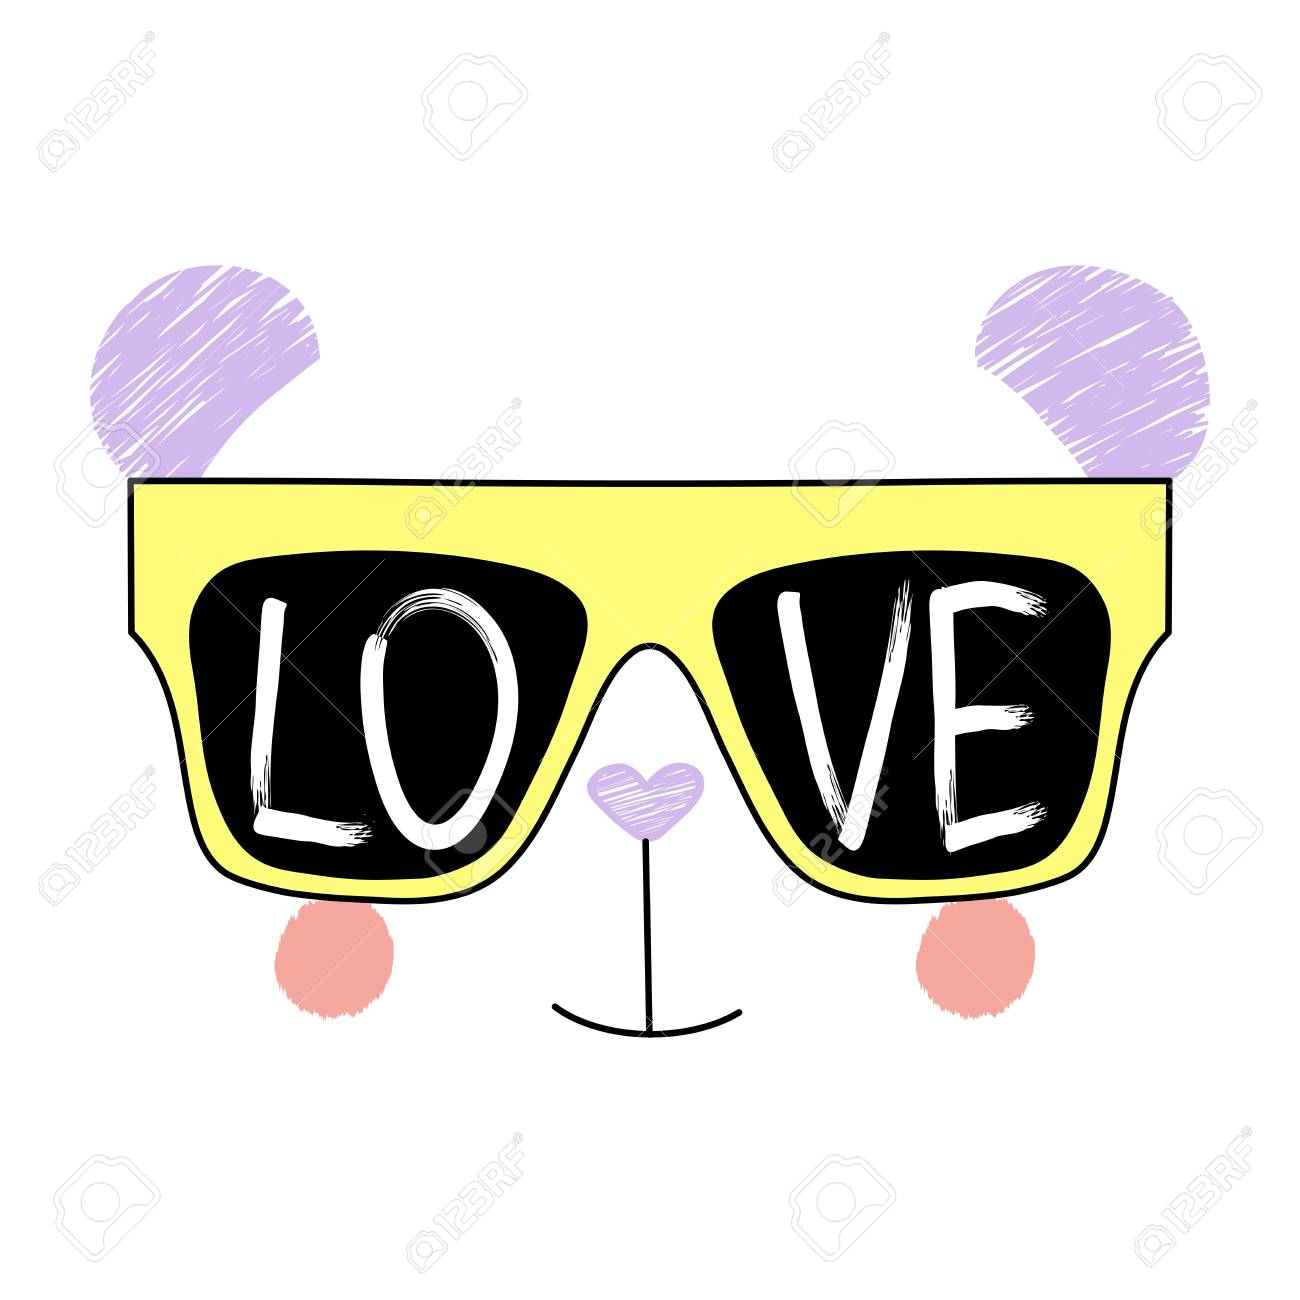 dc99b6f6f86 Hand Drawn Vector Illustration Of A Funny Panda Face In Sunglasses ...